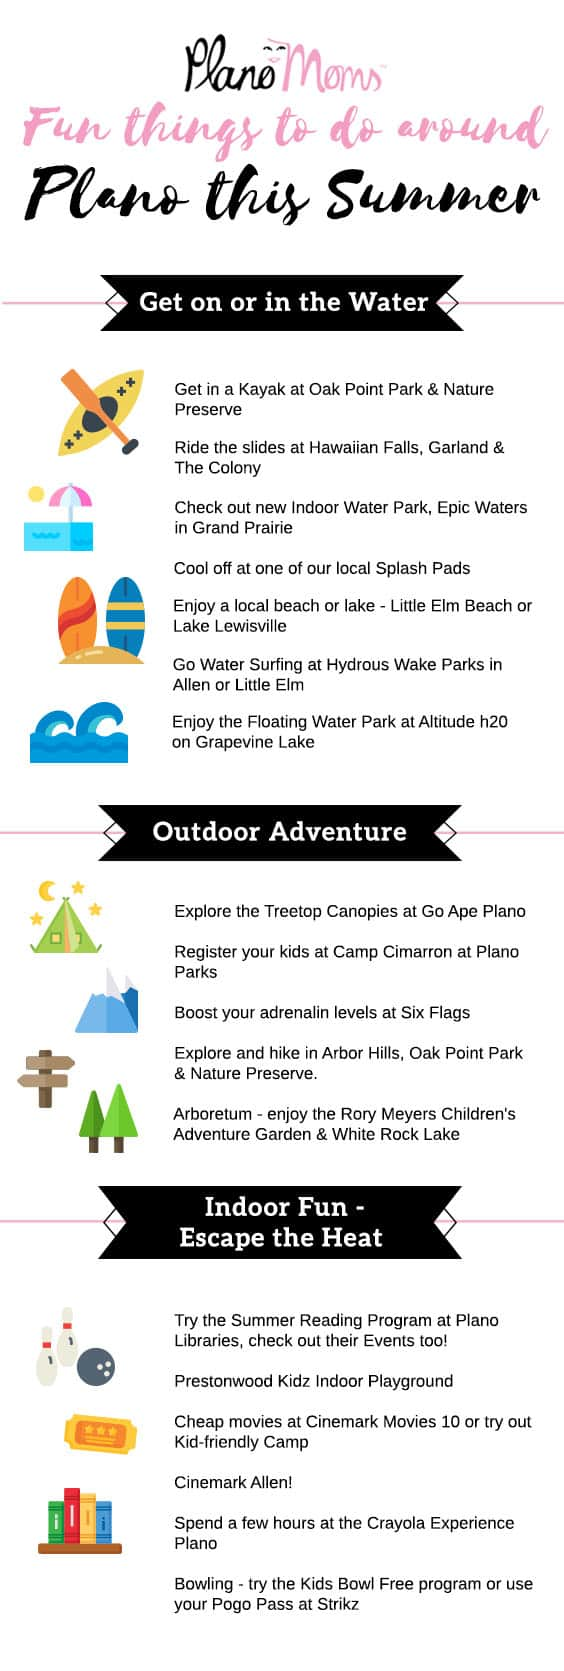 Summer Fun ideas around Plano